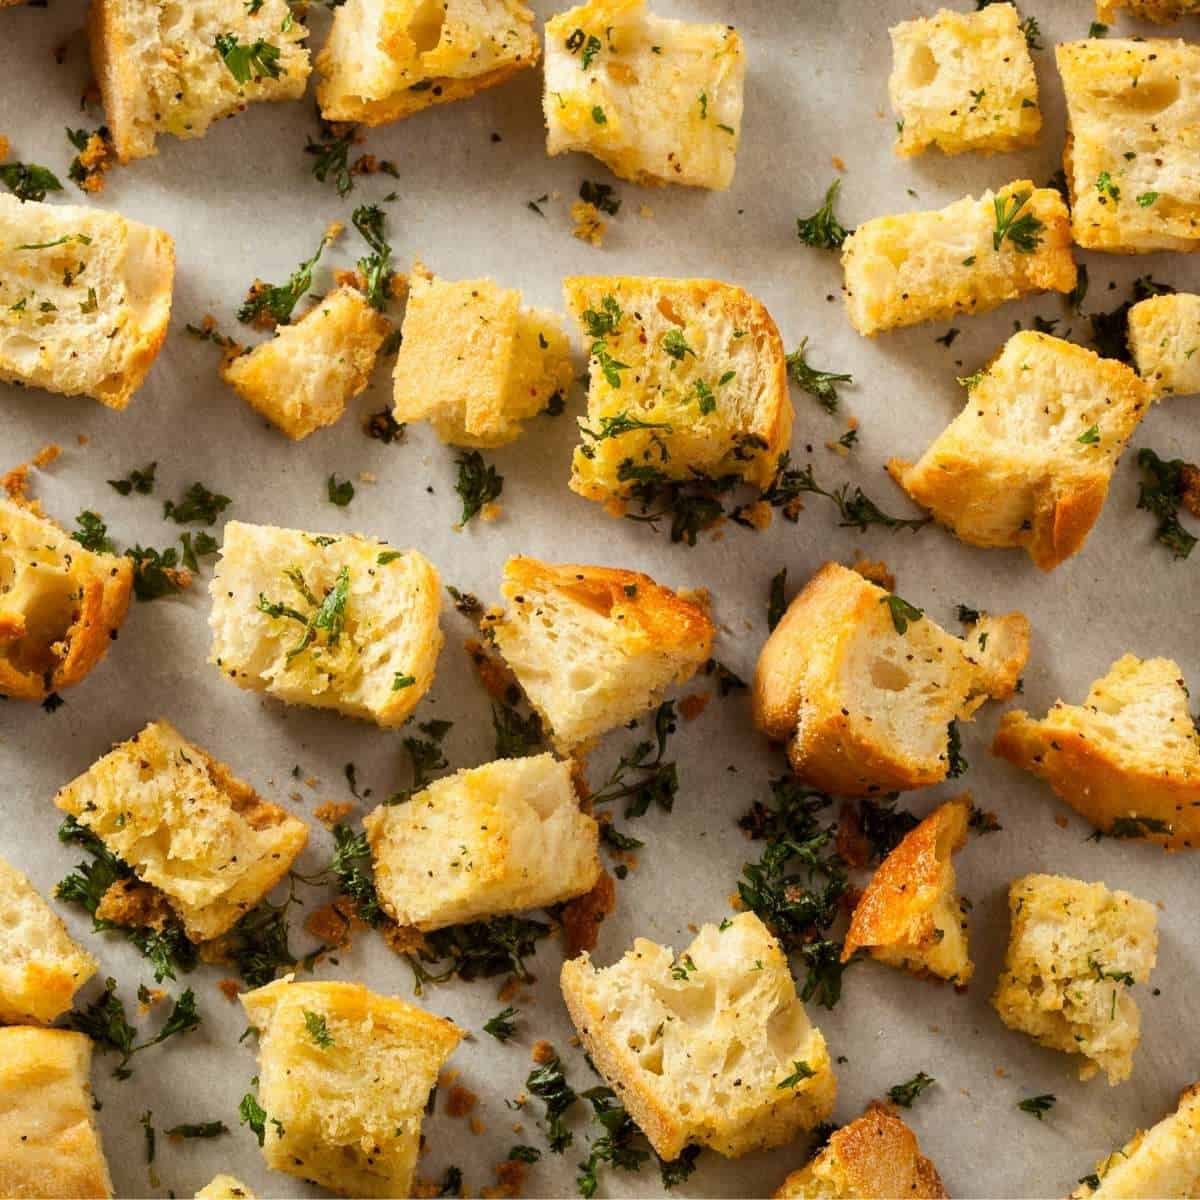 homemade croutons made from leftover bread